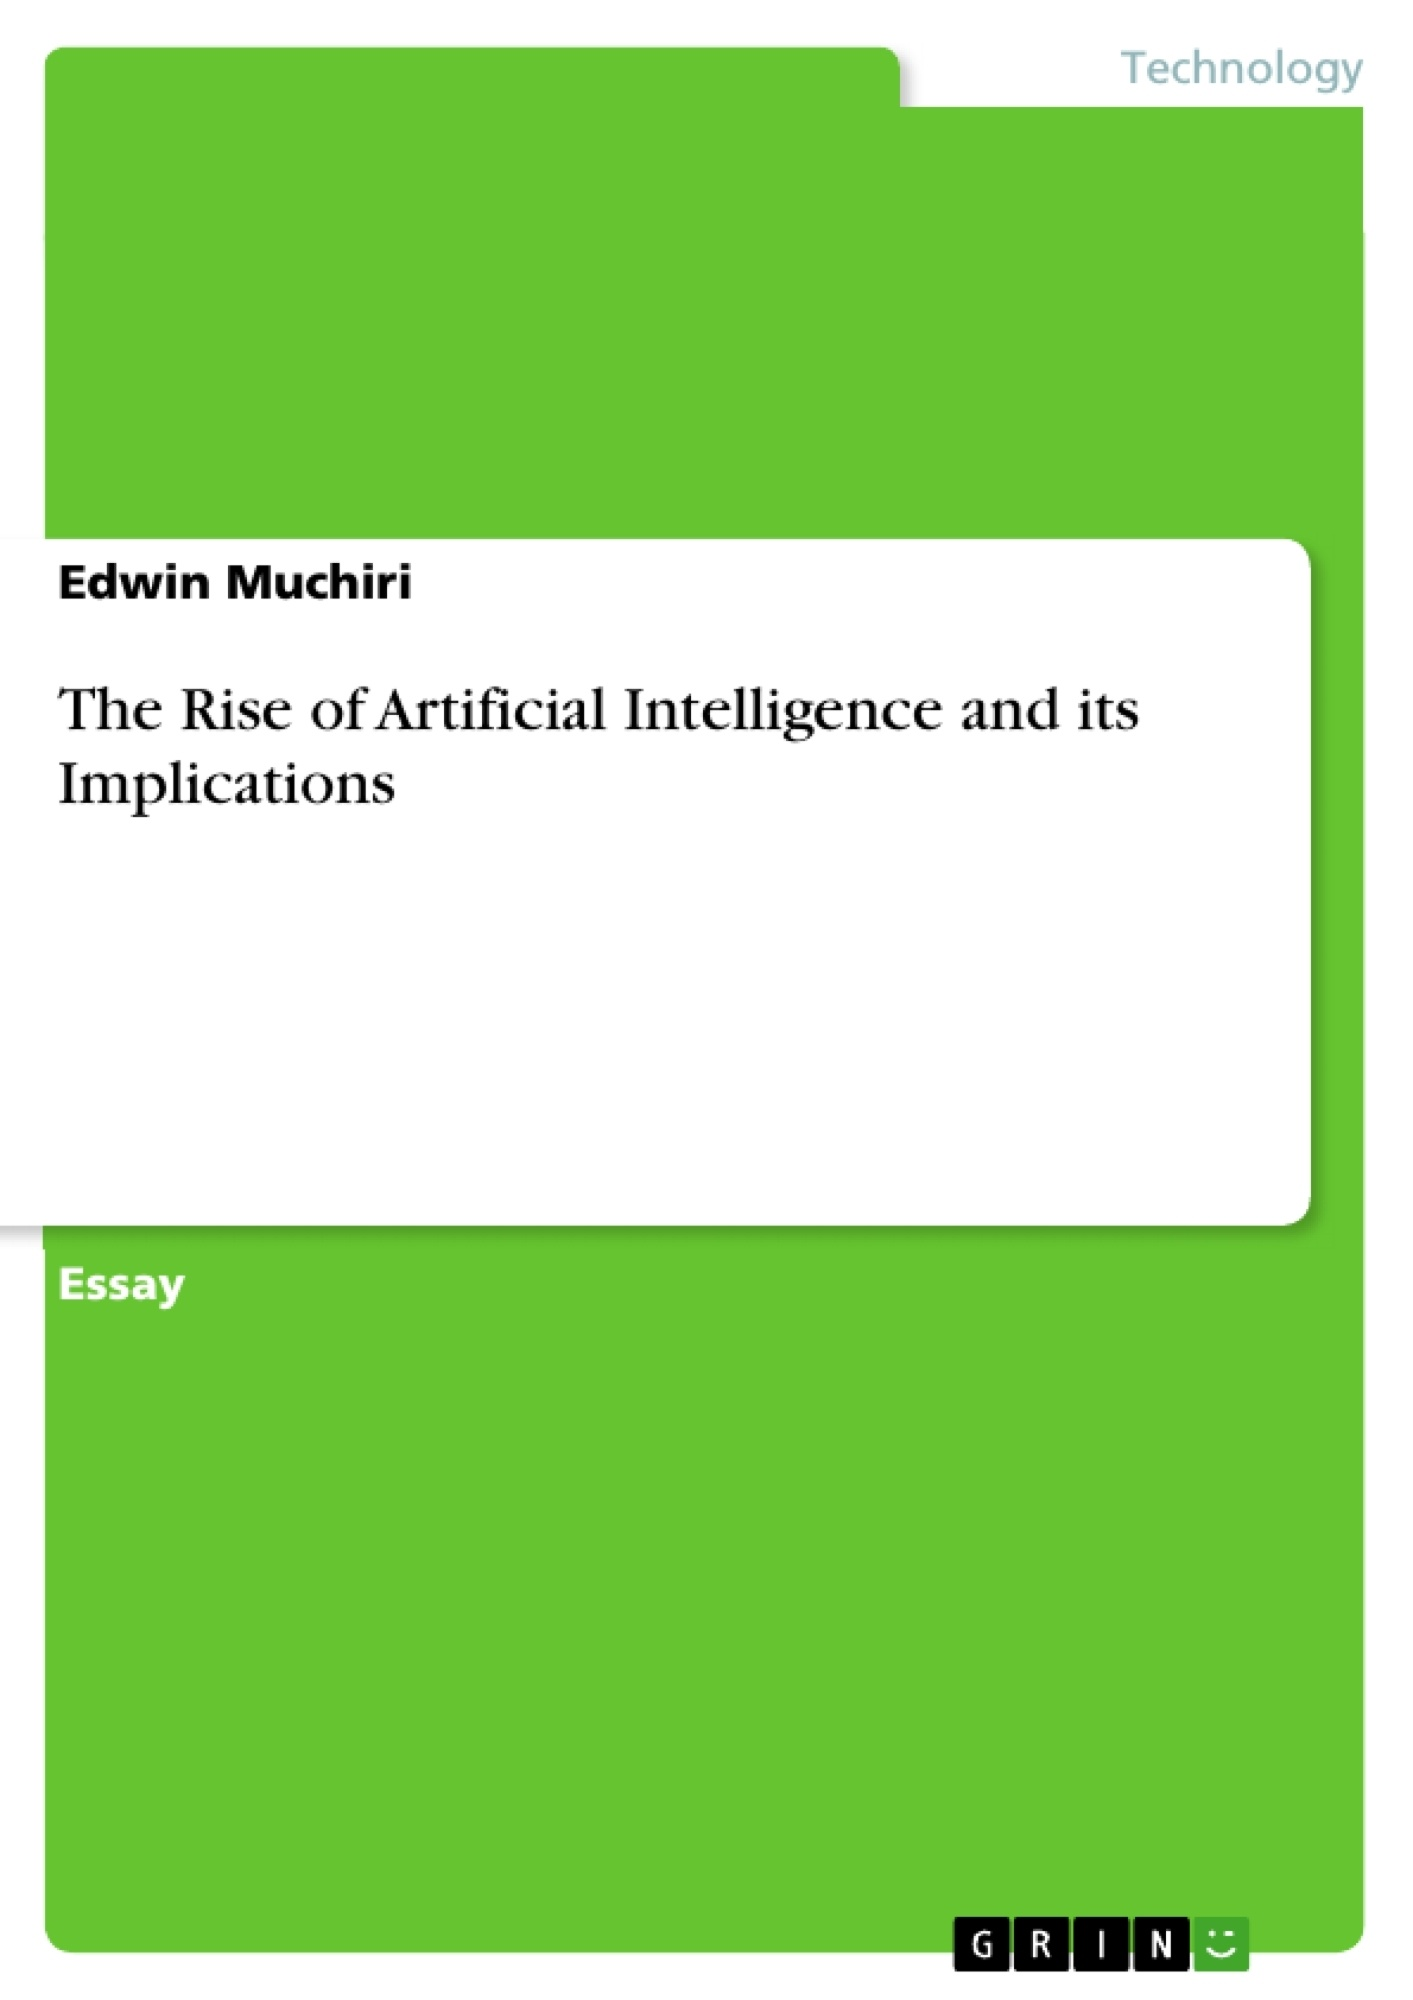 Title: The Rise of Artificial Intelligence and its Implications